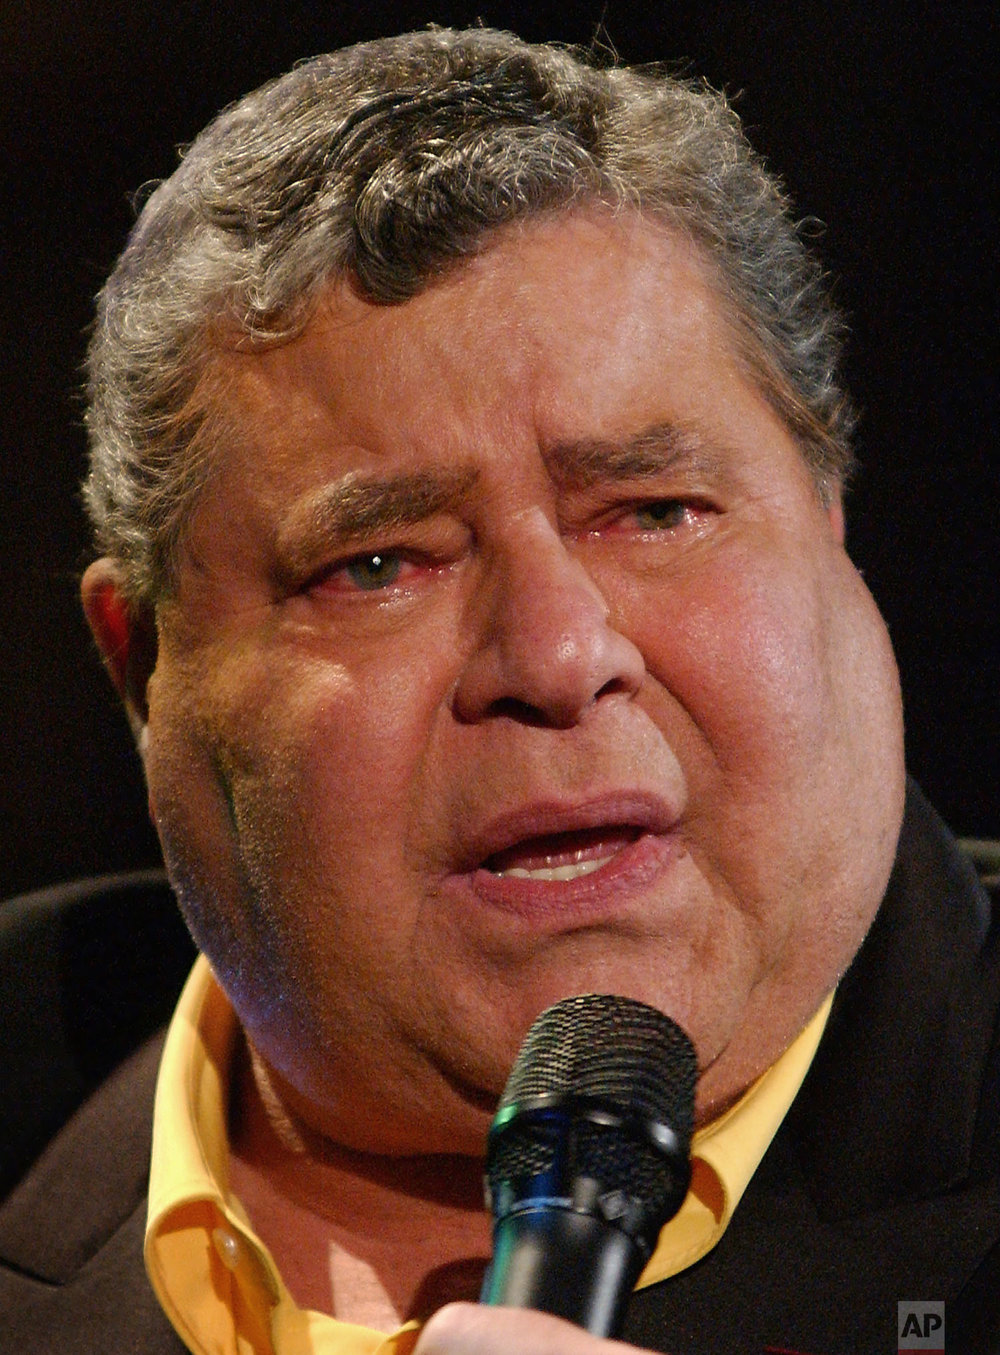 Muscular Dystrophy Association National Chairman Jerry Lewis speaks at the end of his 36th annual Labor Day weekend telethon in Los Angeles, Monday, Sept. 2, 2002. Lewis is swollen from the effects of steroid-based medication for a lung condition. The show raised a record $56.8 million in donations. (AP Photo/Lucy Nicholson)